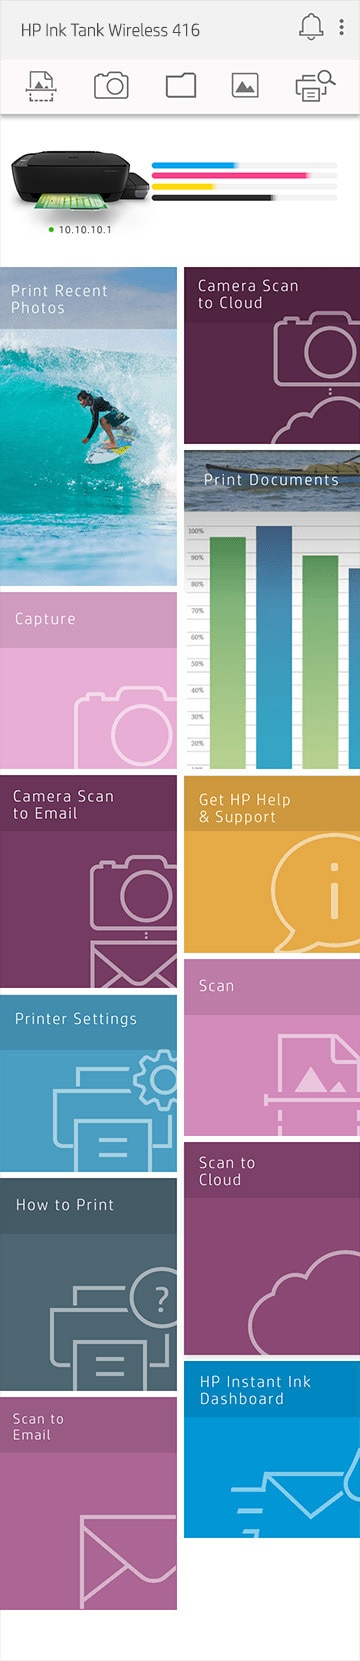 HP Mobile Printing from a Smartphone or Tablet | HP